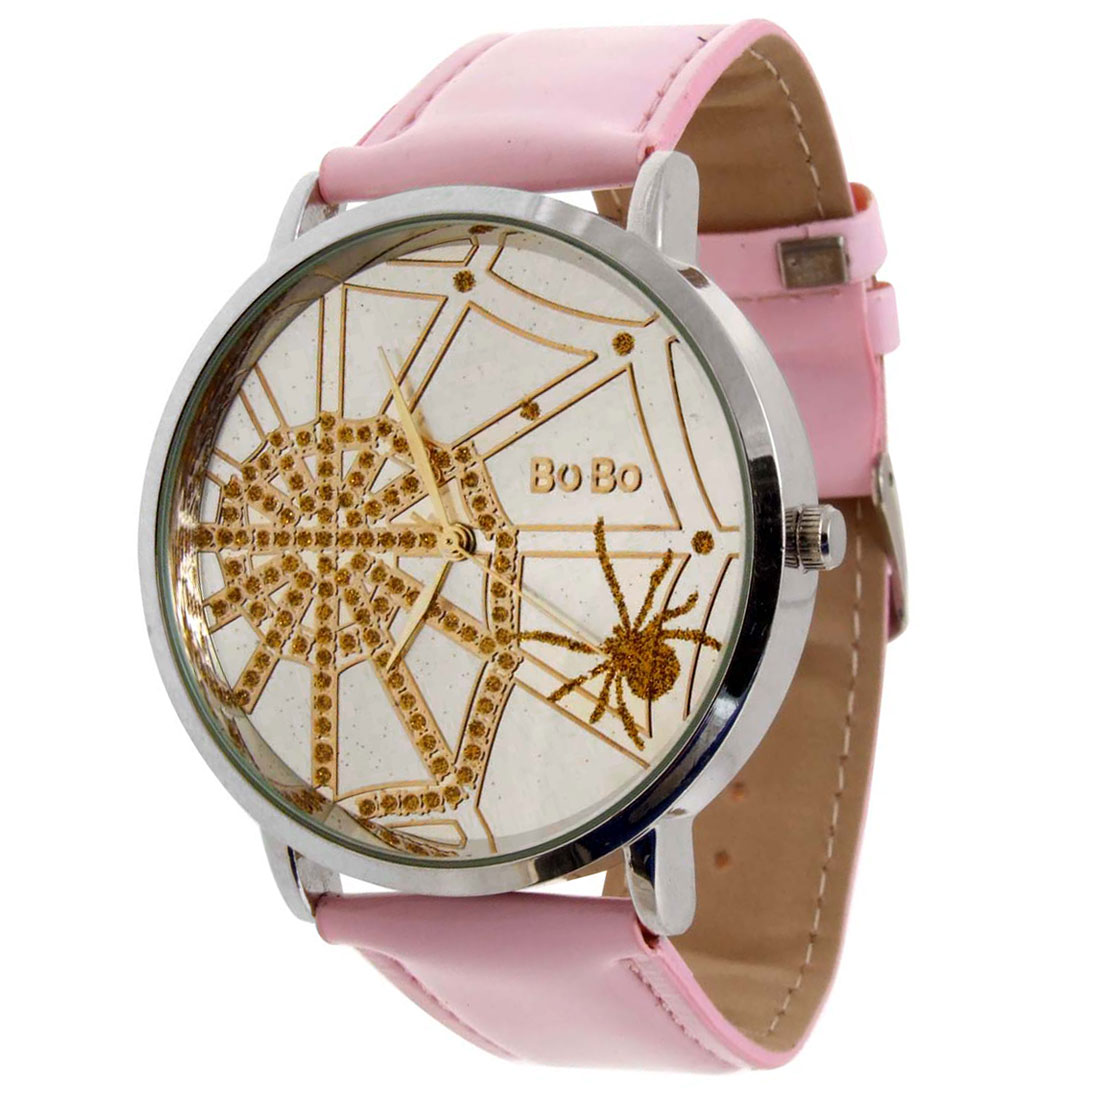 Fashion Pink Spider Web Cobweb Quartz Wrist Time Watch